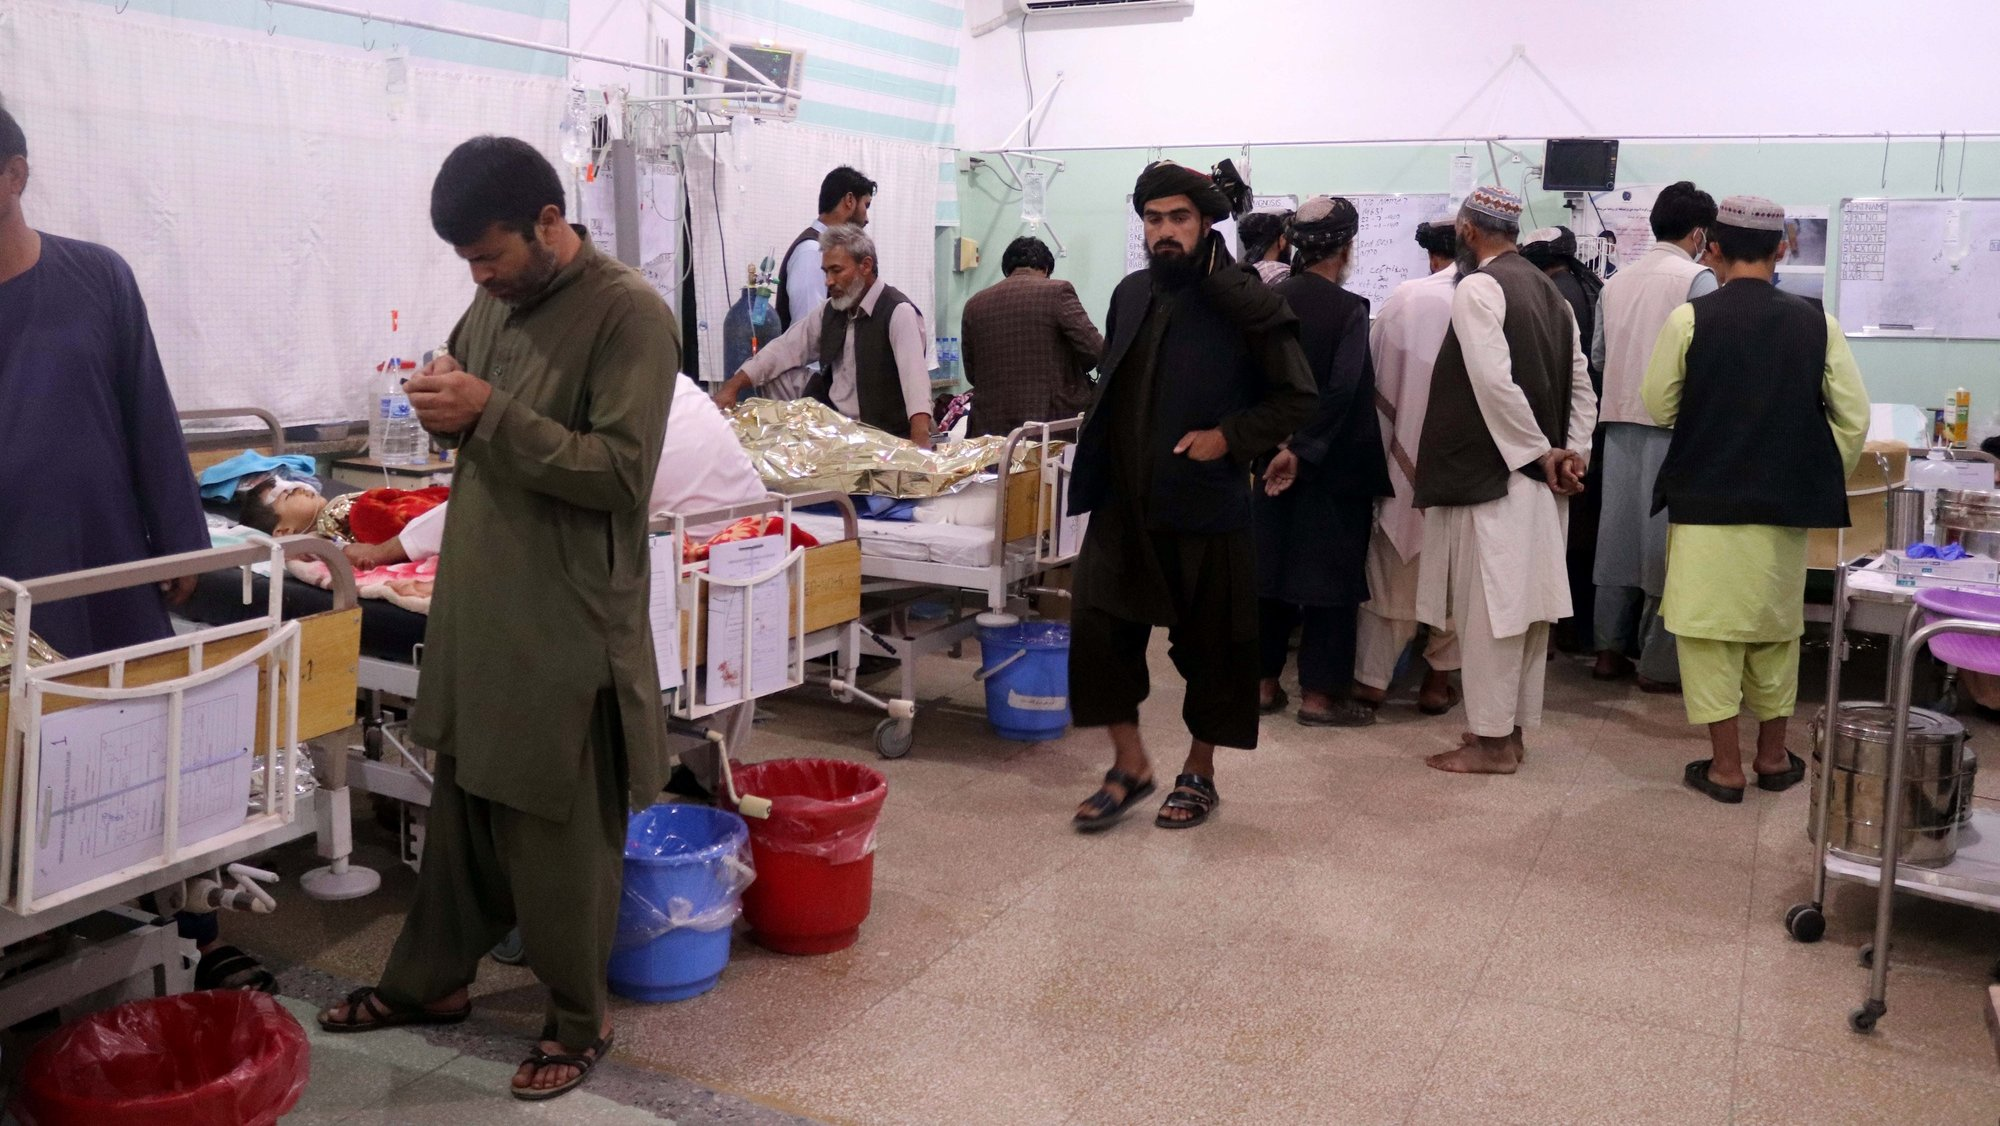 epa09526075 Injured victims of the bomb blast during Friday congregational prayers at Shi'ite Muslims Mosque, receive treatment at a hospital in Kandahar, Afghanistan, 15 October 2021. At least 32 worshipers died, and many others suffered injuries in a powerful explosion that ripped through a Shi'ite mosque in the southern Afghan city of Kandahar during Friday prayers, officials said. The Islamic State has carried out numerous attacks, in recent years, against the Shia minority, especially the Hazaras. The Taliban have launched massive operations against the Islamic State in different Afghan provinces, aiming to finish a group that they consider the main threat to their government.  EPA/STRINGER ATTENTION: GRAPHIC CONTENT